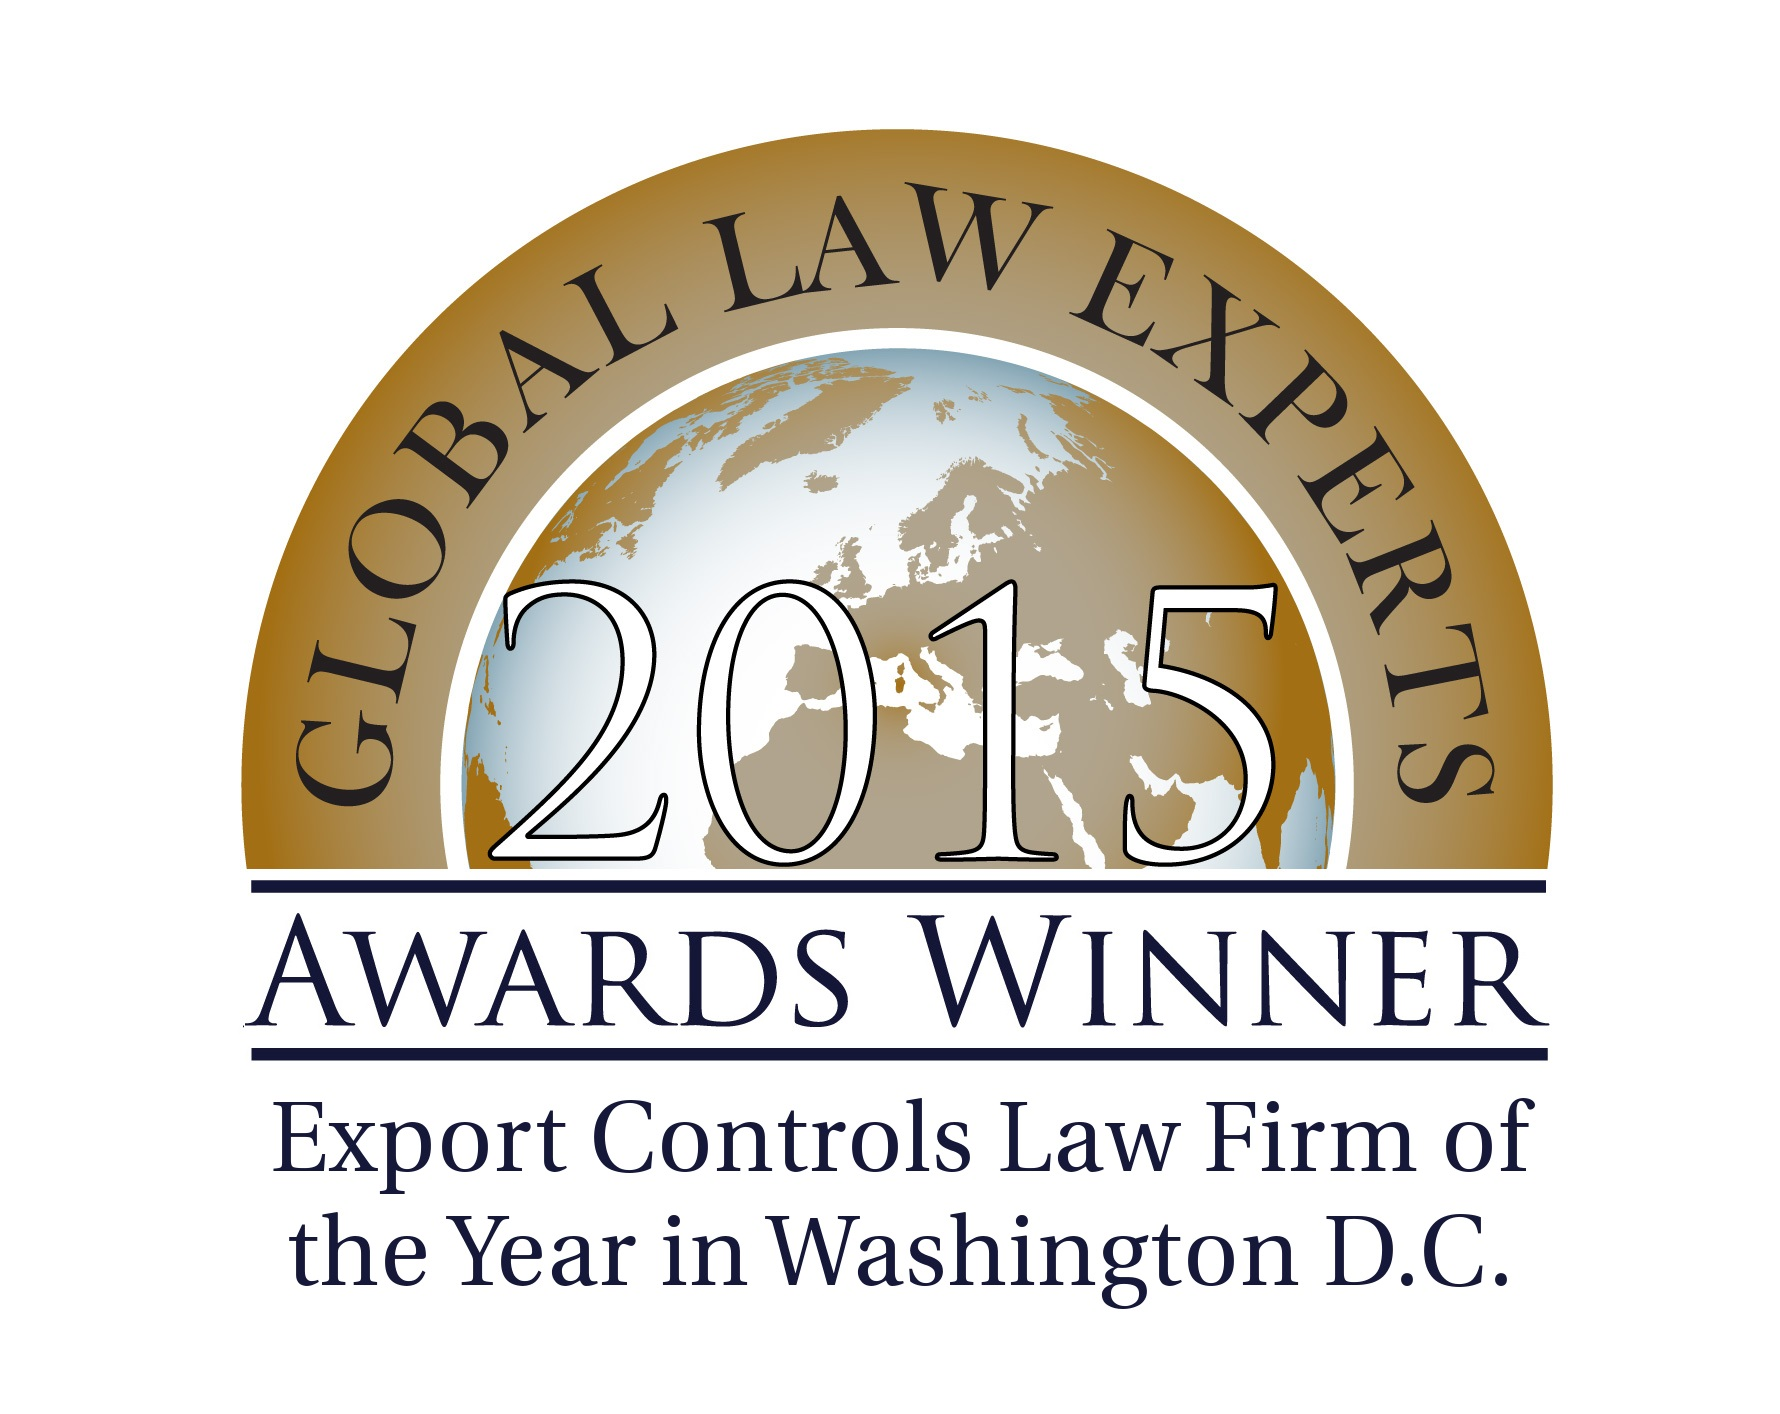 GLE AWARDS 2015 - Export Controls Law Firm of the Year